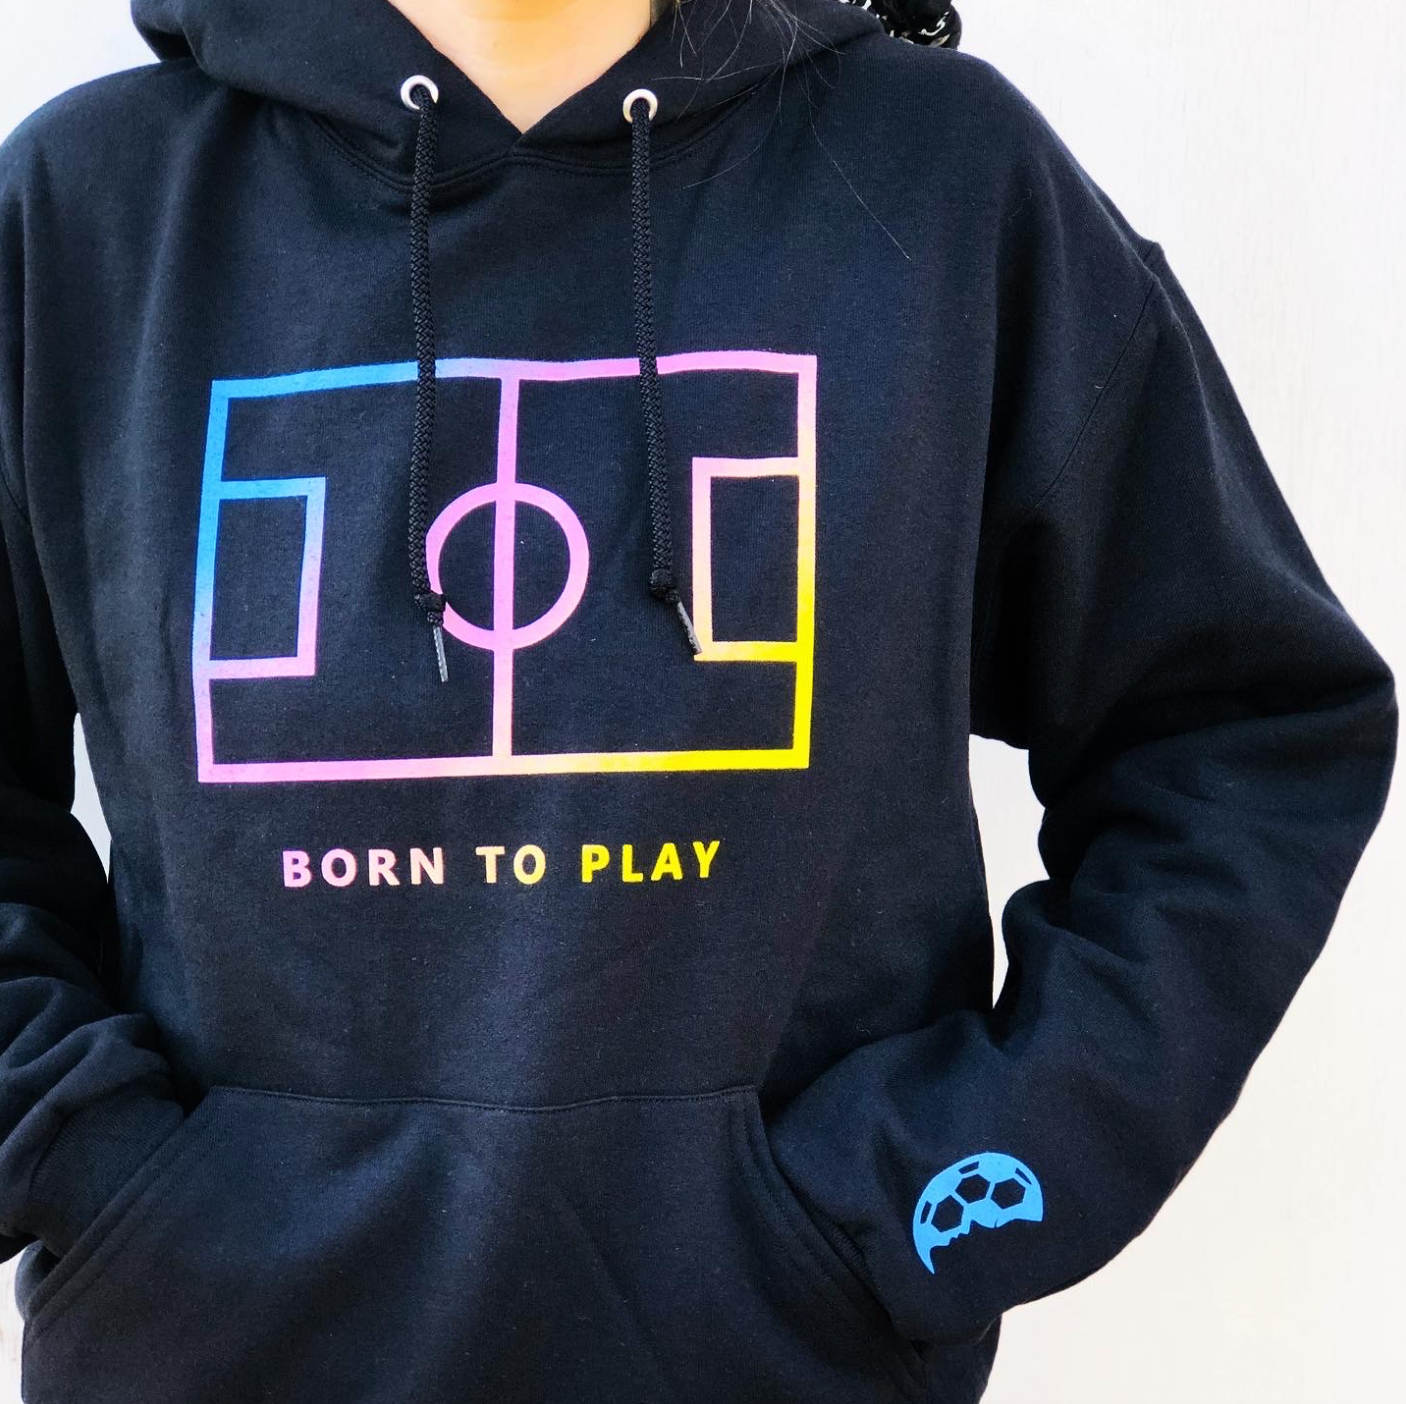 Born To Play Sweatshirt - soccergrlprobs